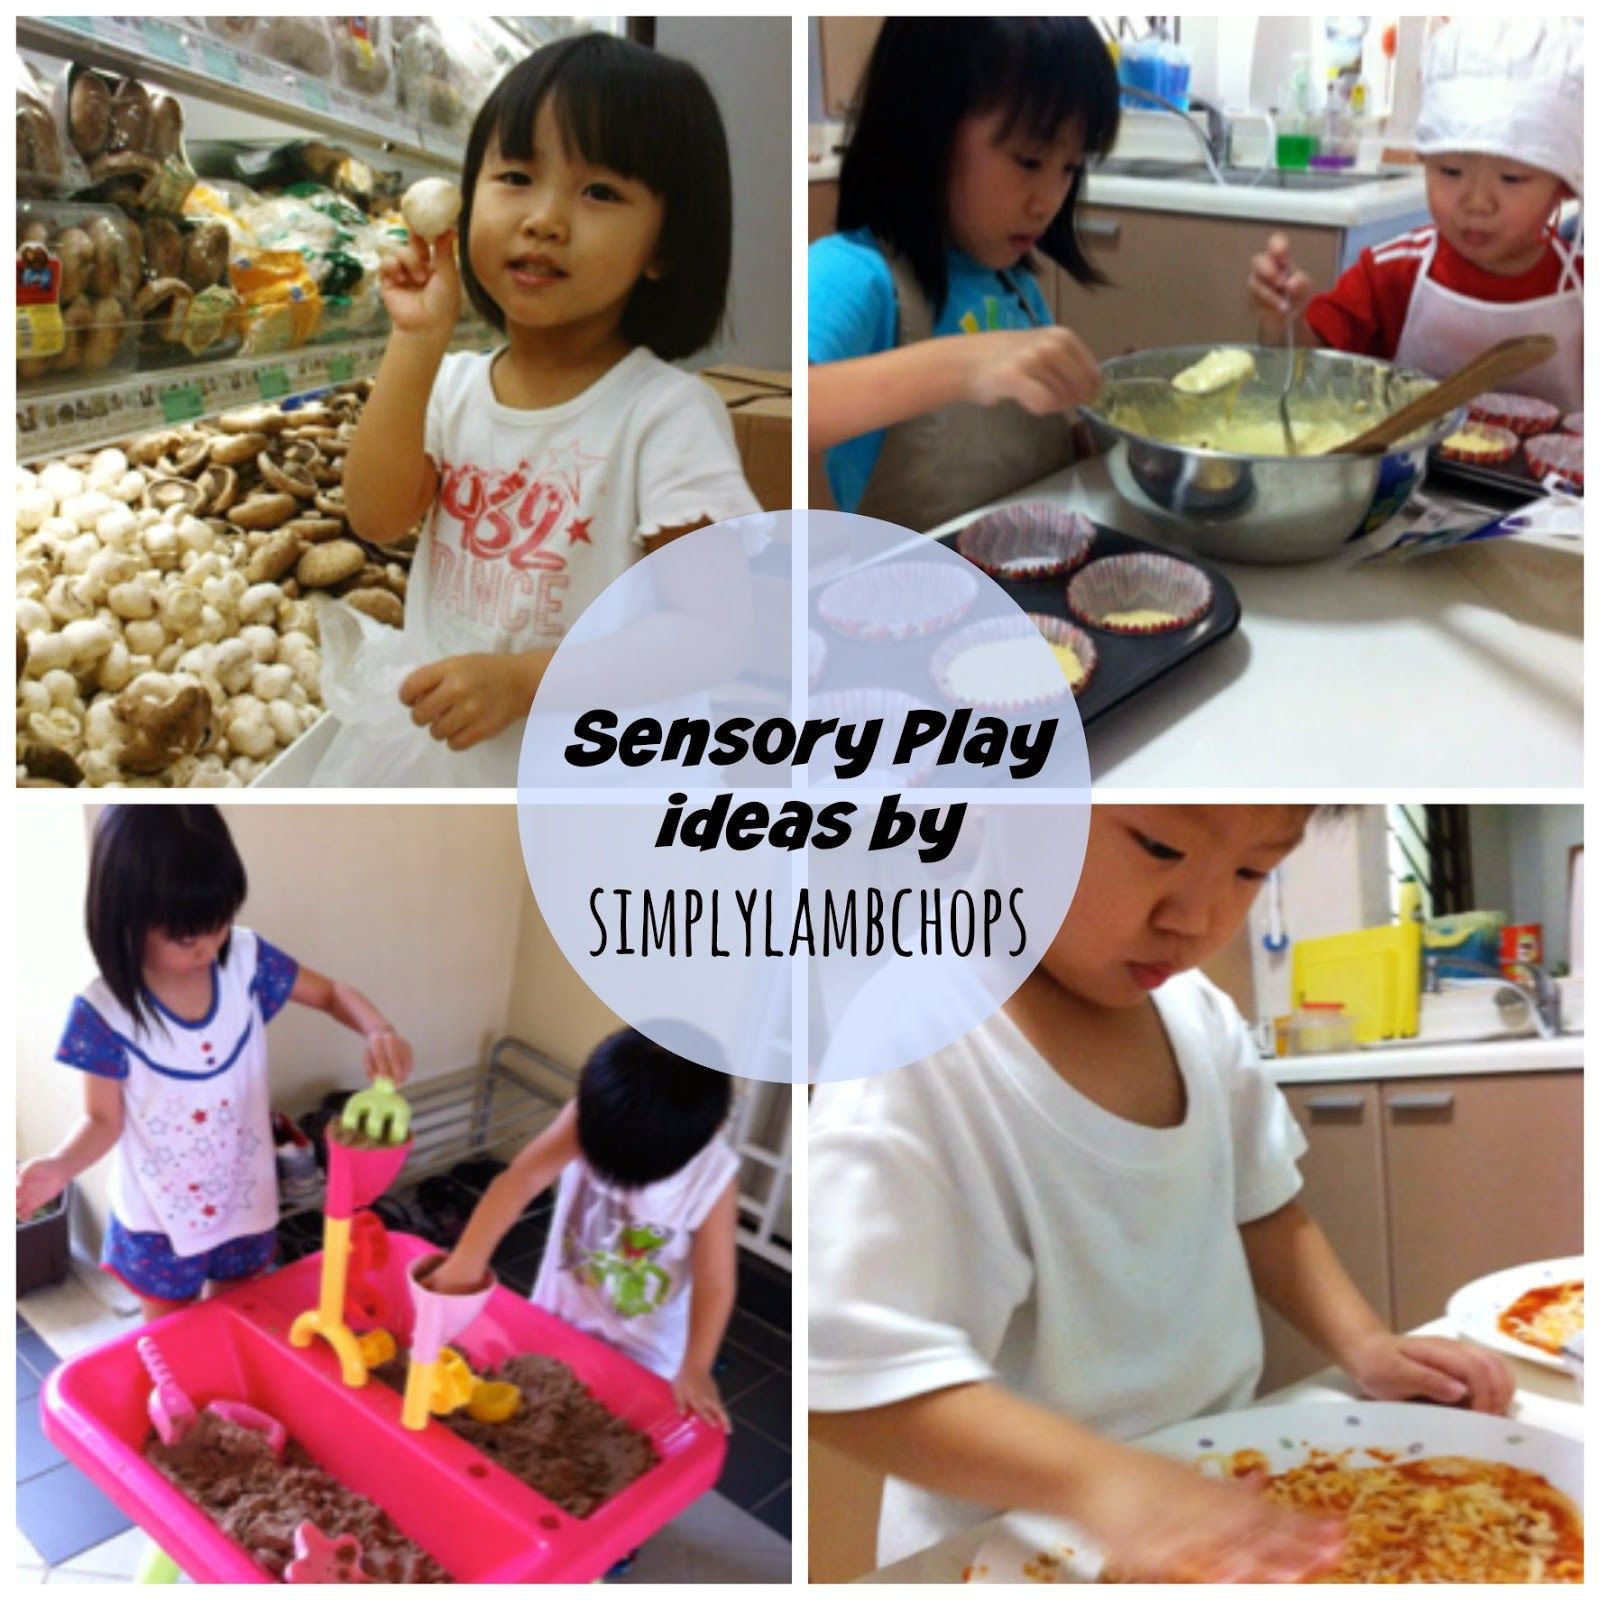 Sensory Play ideas by Simply Lambchops